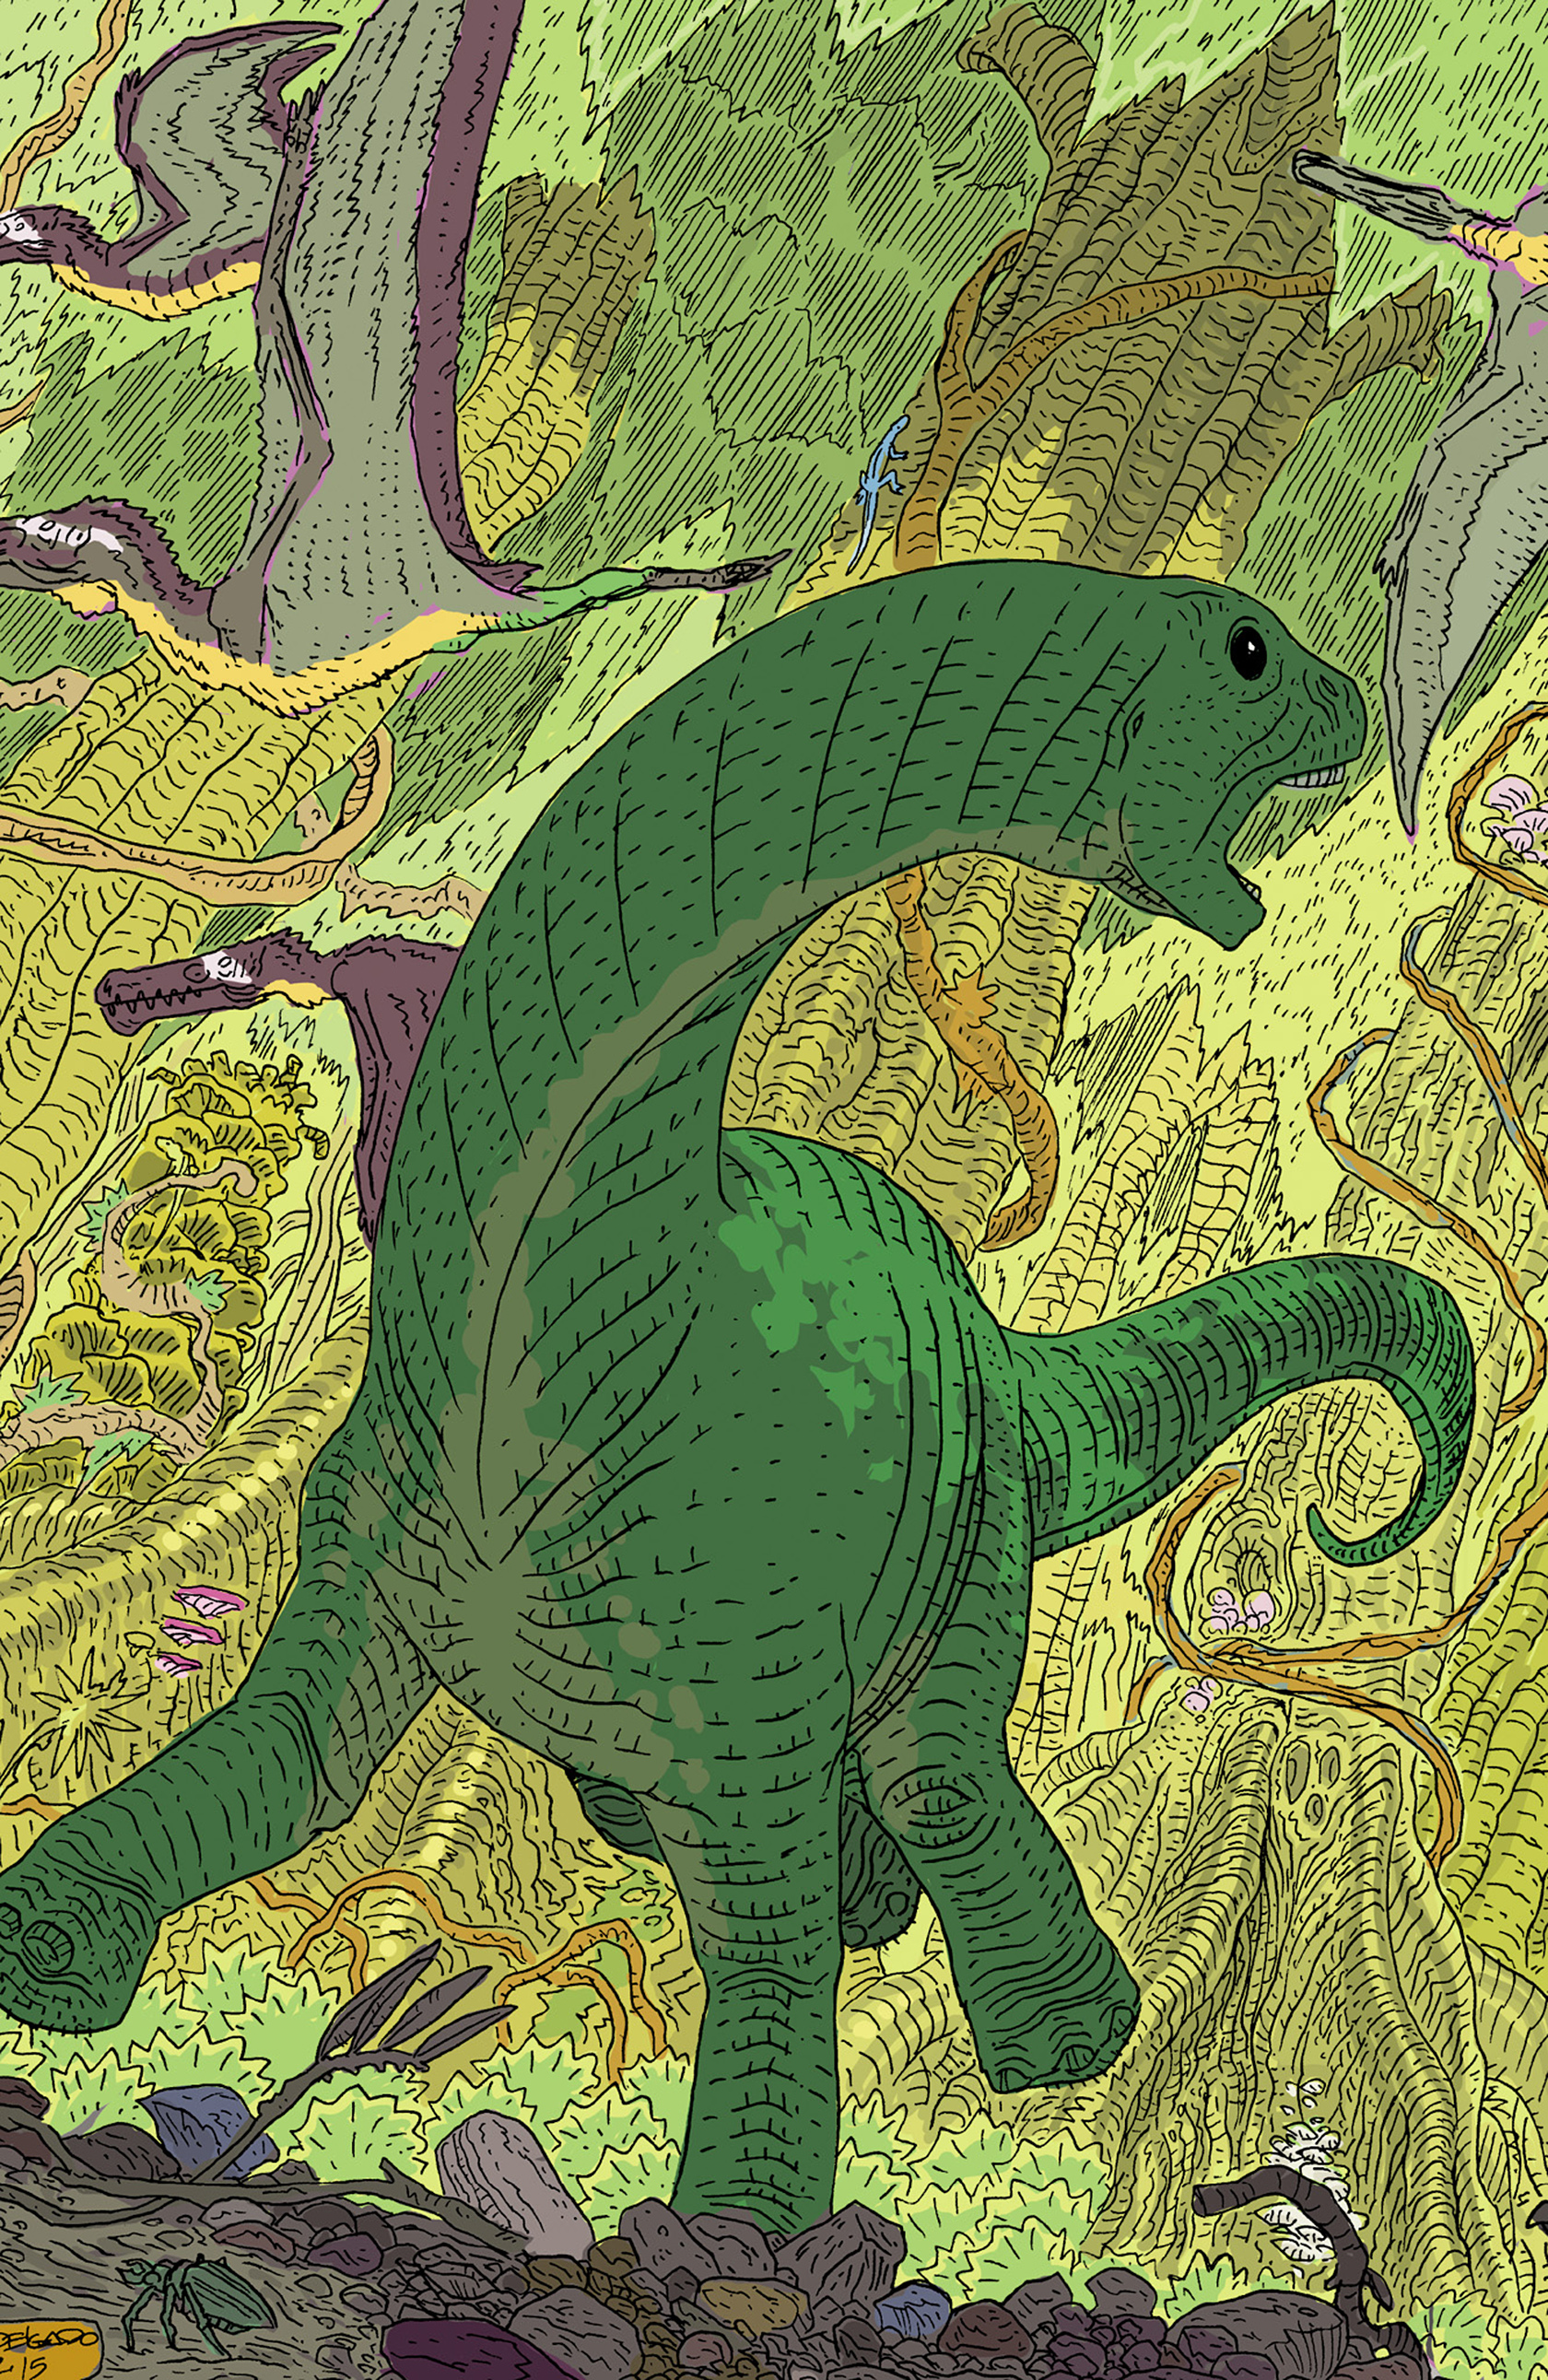 Read online Age of Reptiles: Ancient Egyptians comic -  Issue #2 - 29